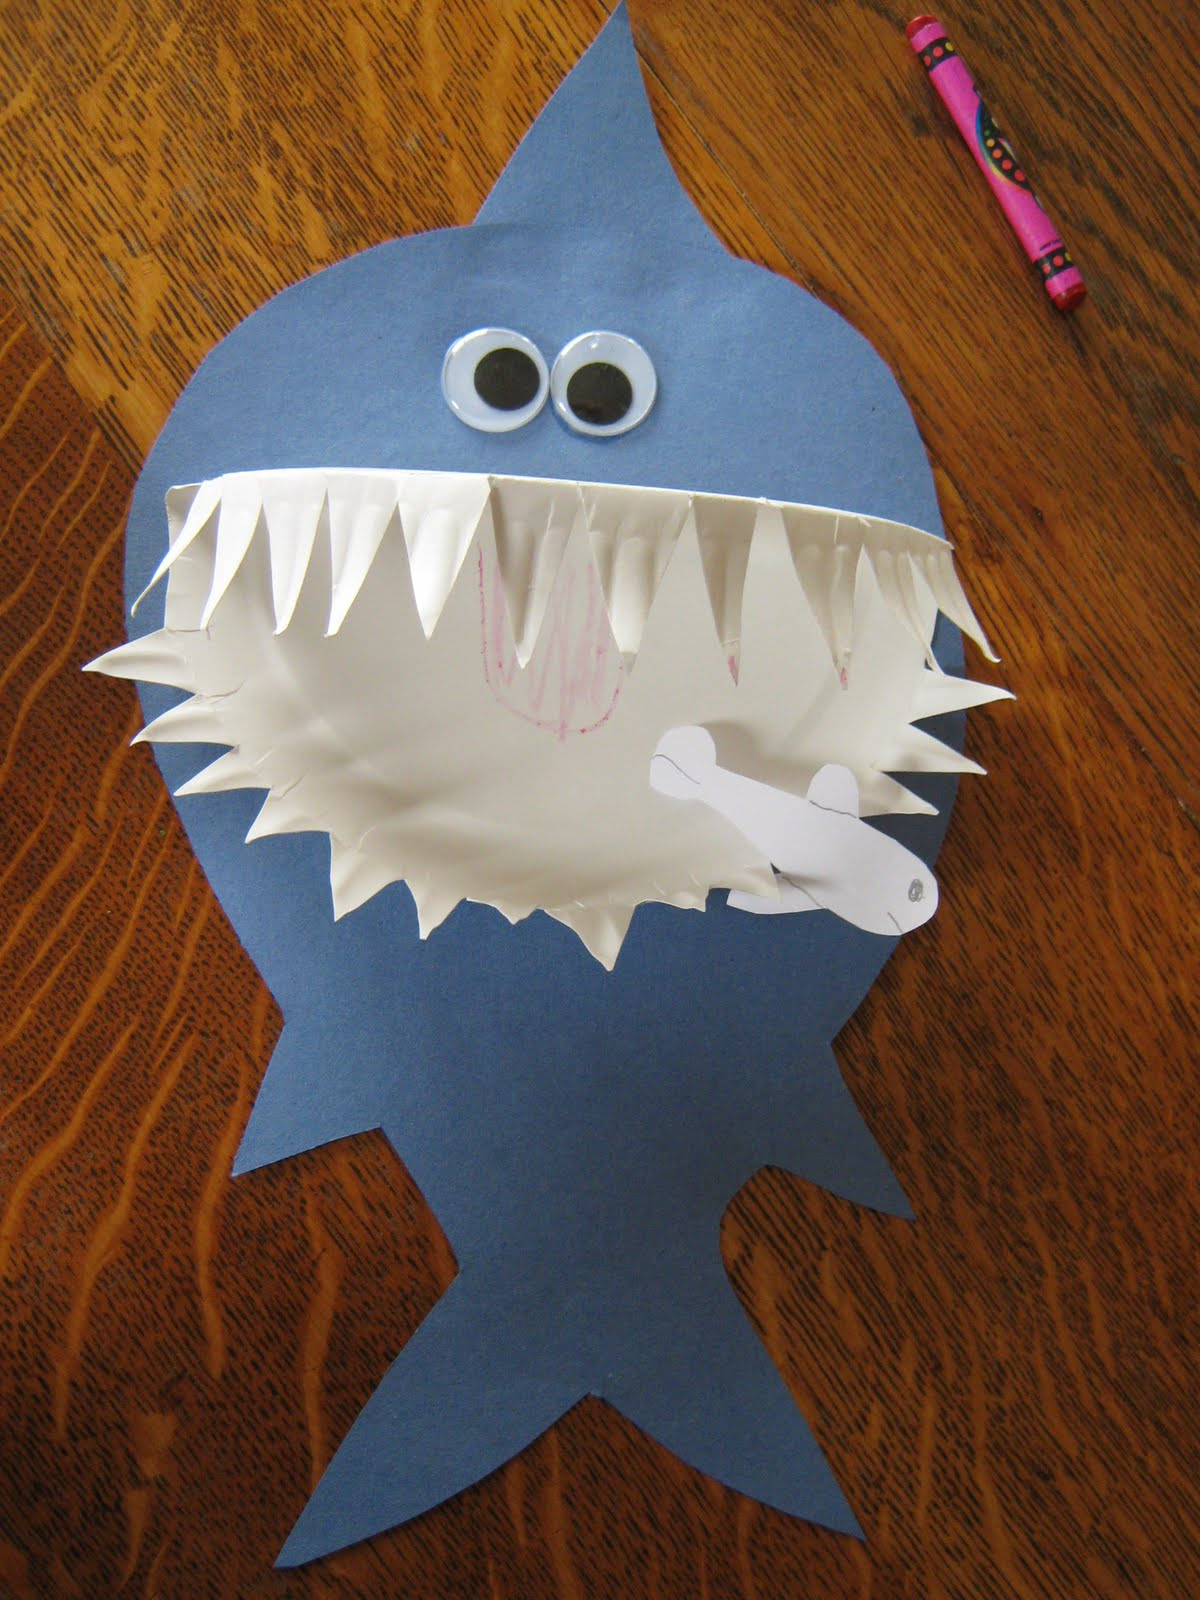 Best ideas about Crafts For Preschool Kids . Save or Pin Paper Plate Shark Now.